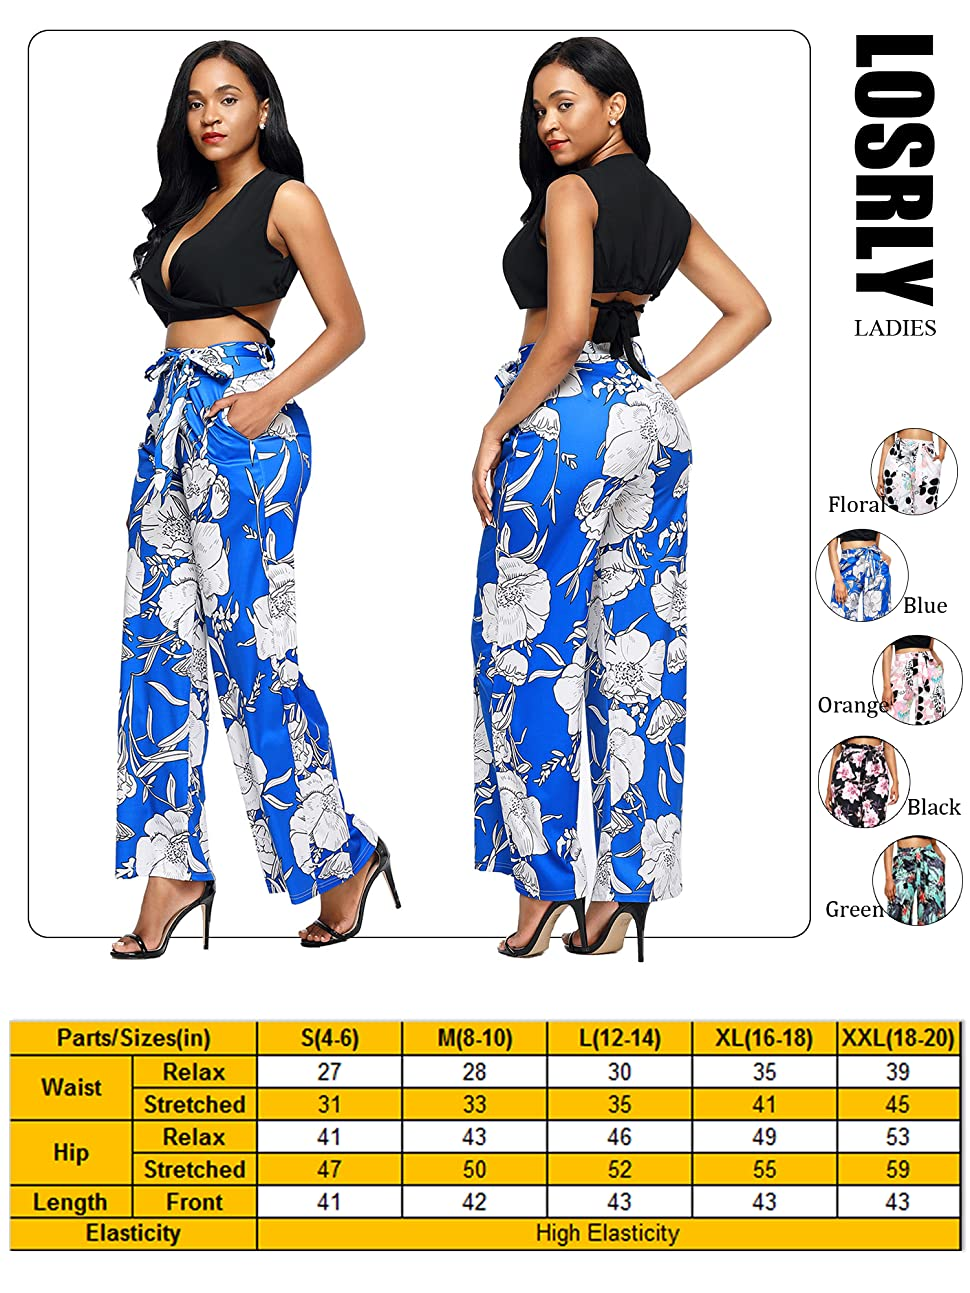 9bad05469f7780 LOSRLY Brand Offer Fashion Pants for Customers to Have an Excellent Clothing  Trip! Features: Back zipper with belt. Floral printed. High waist